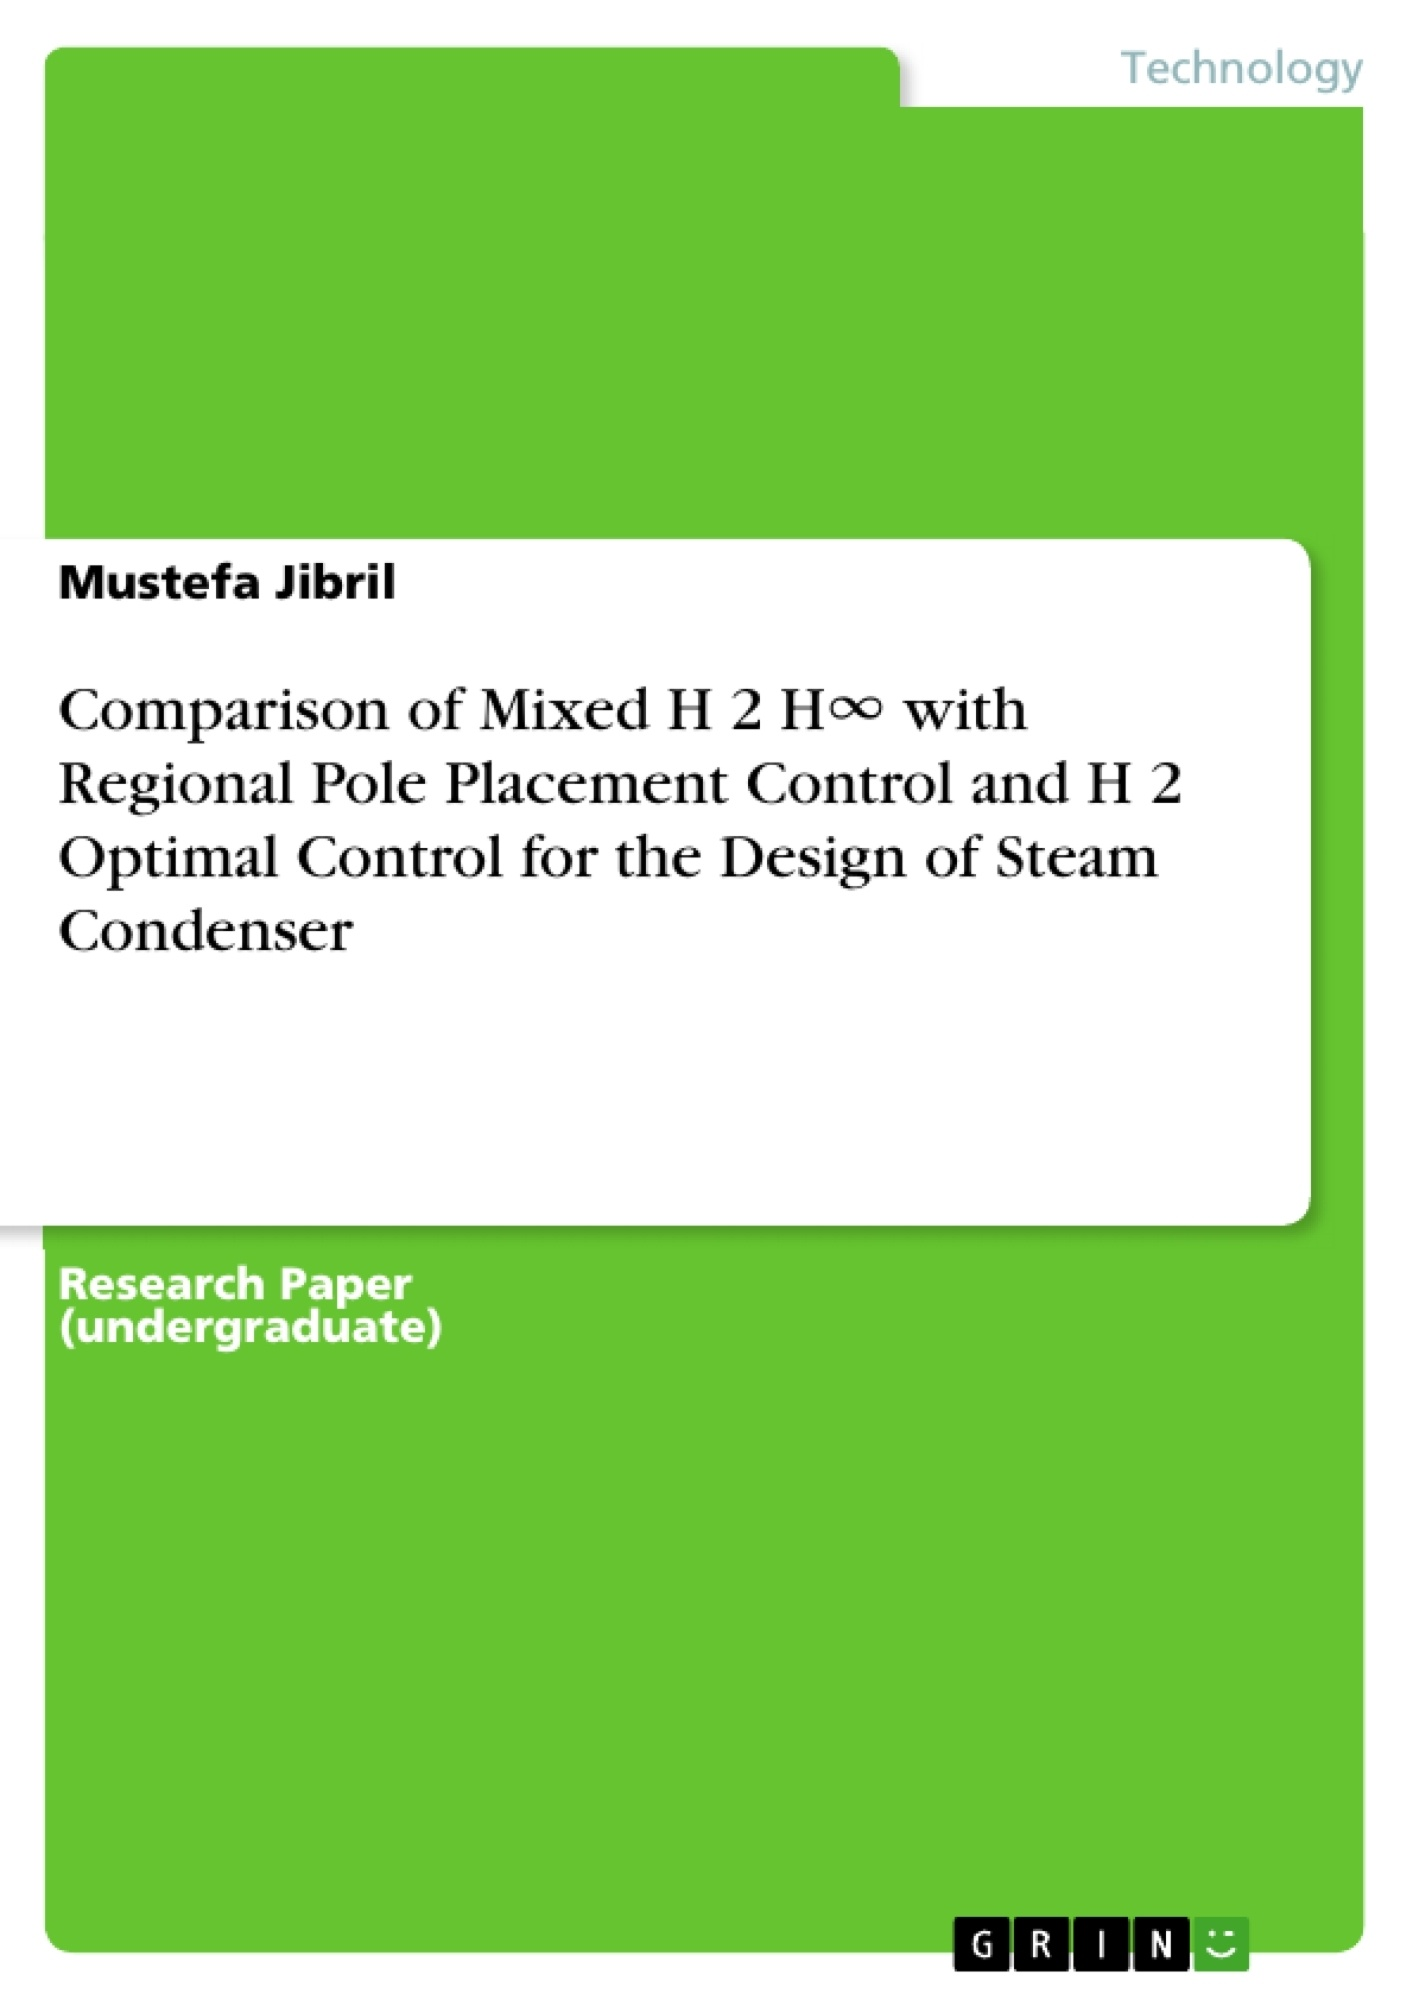 Title: Comparison of Mixed H 2 H∞ with Regional Pole Placement Control and H 2 Optimal Control for the Design of Steam Condenser